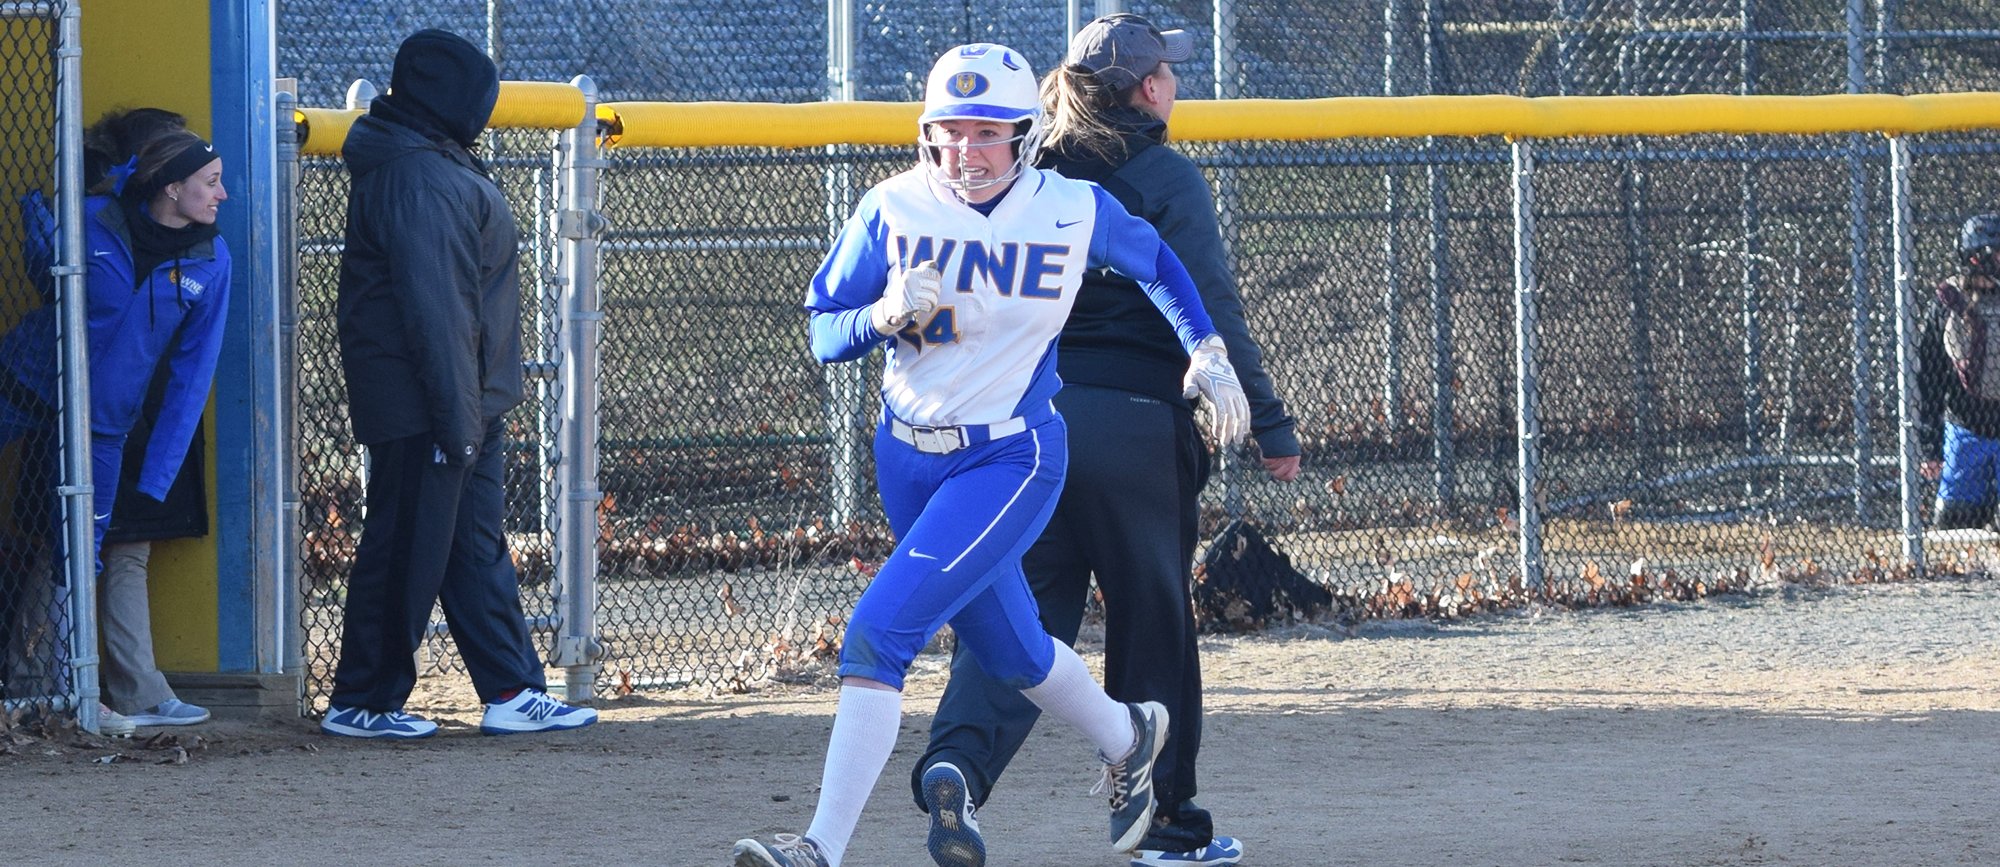 Sophomore Cassidy Howe recorded four hits during Western New England's doubleheader sweep over UNE on Friday in Biddeford. (Photo by Rachael Margossian)